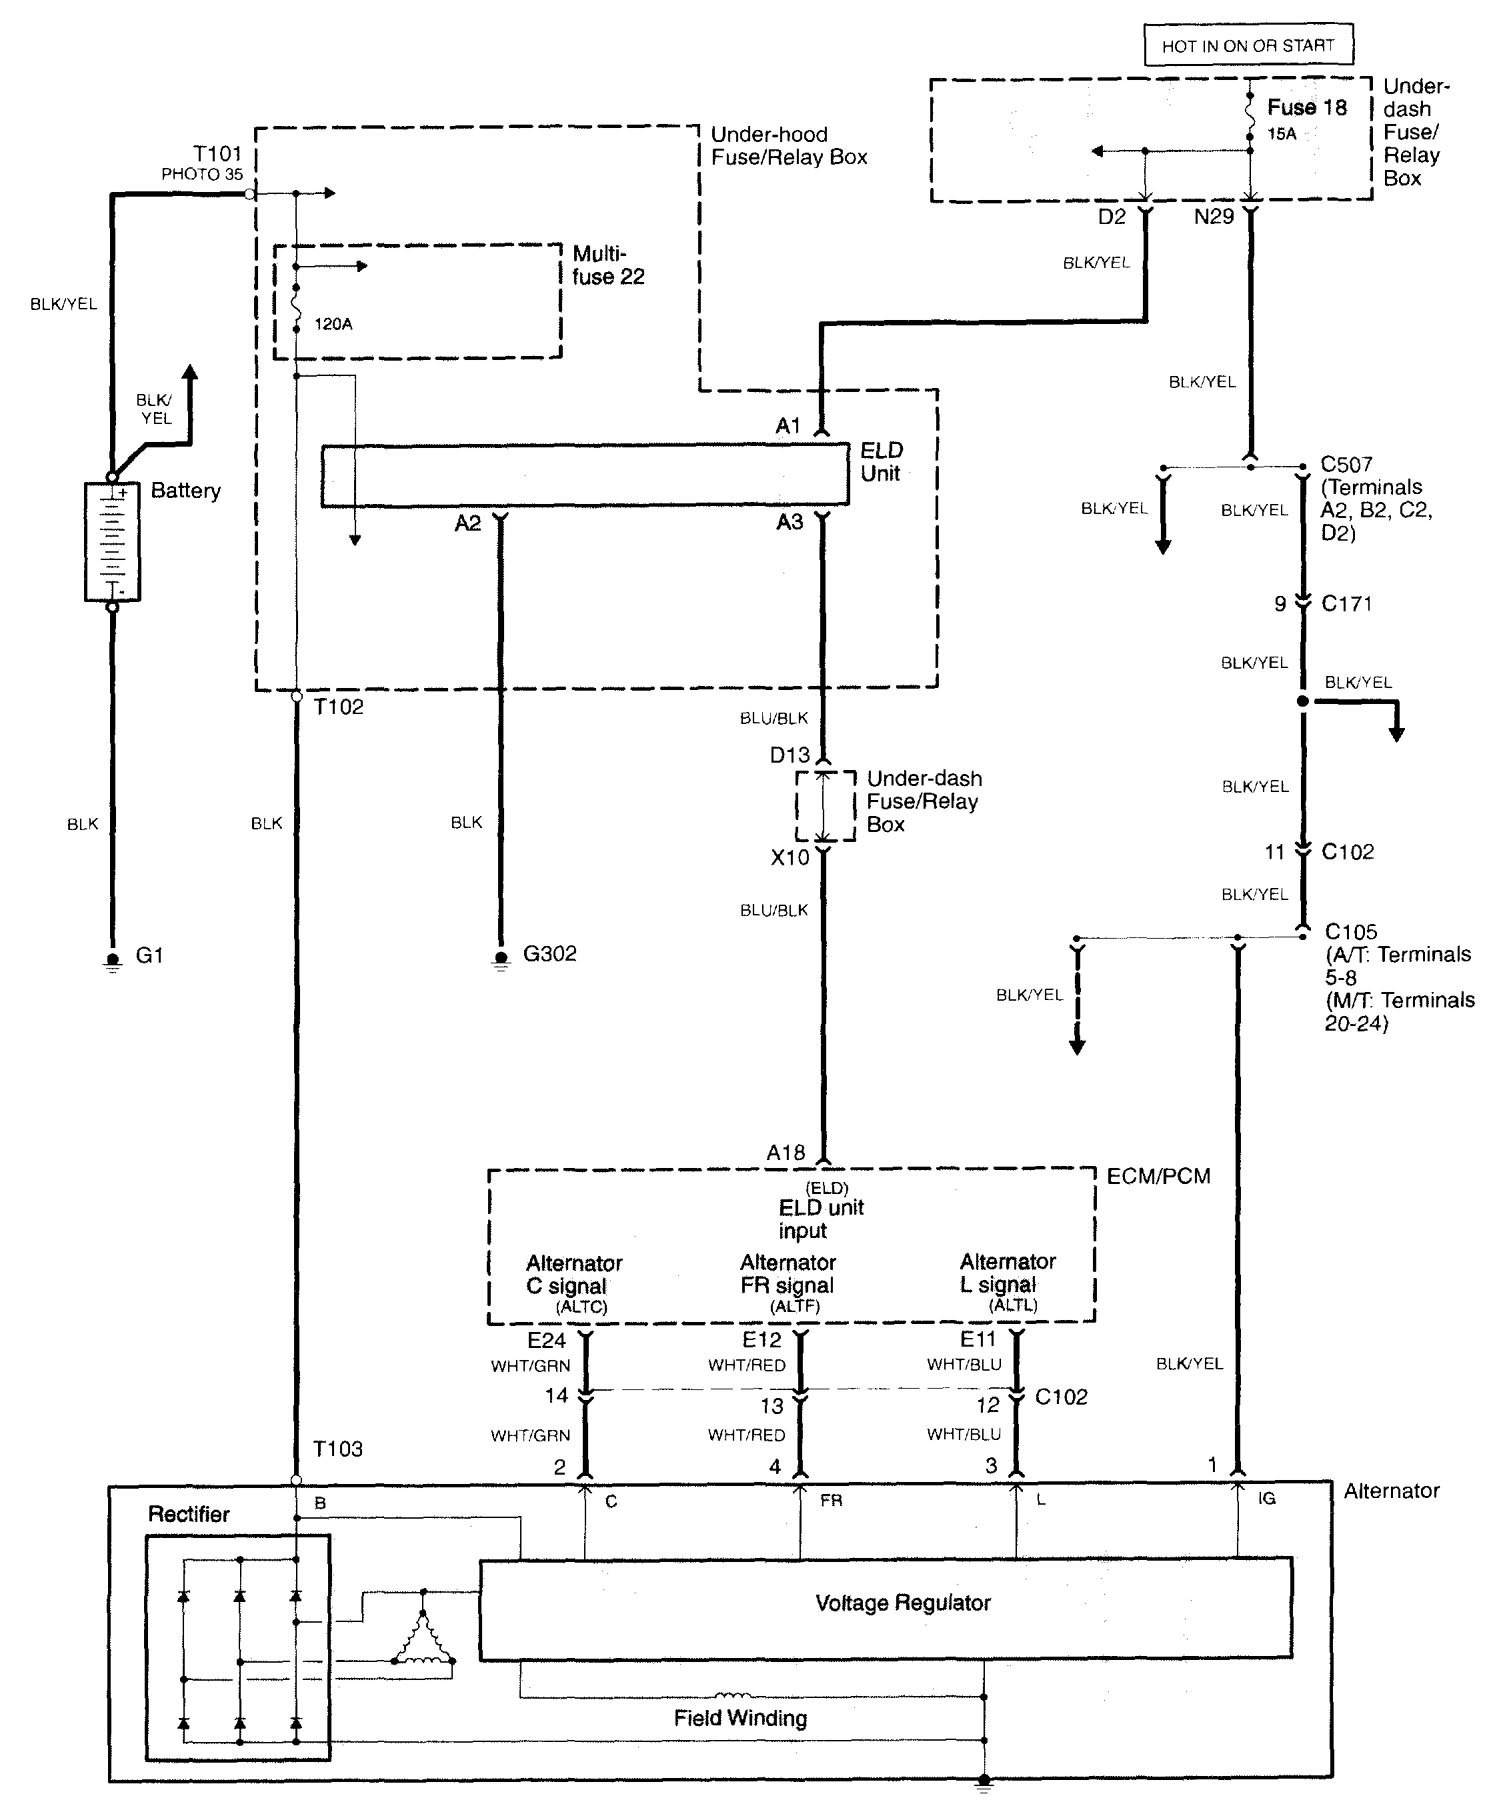 Acura Tl Wiring Diagram Fan Diagrams 2008 2006 Charging System Pcm